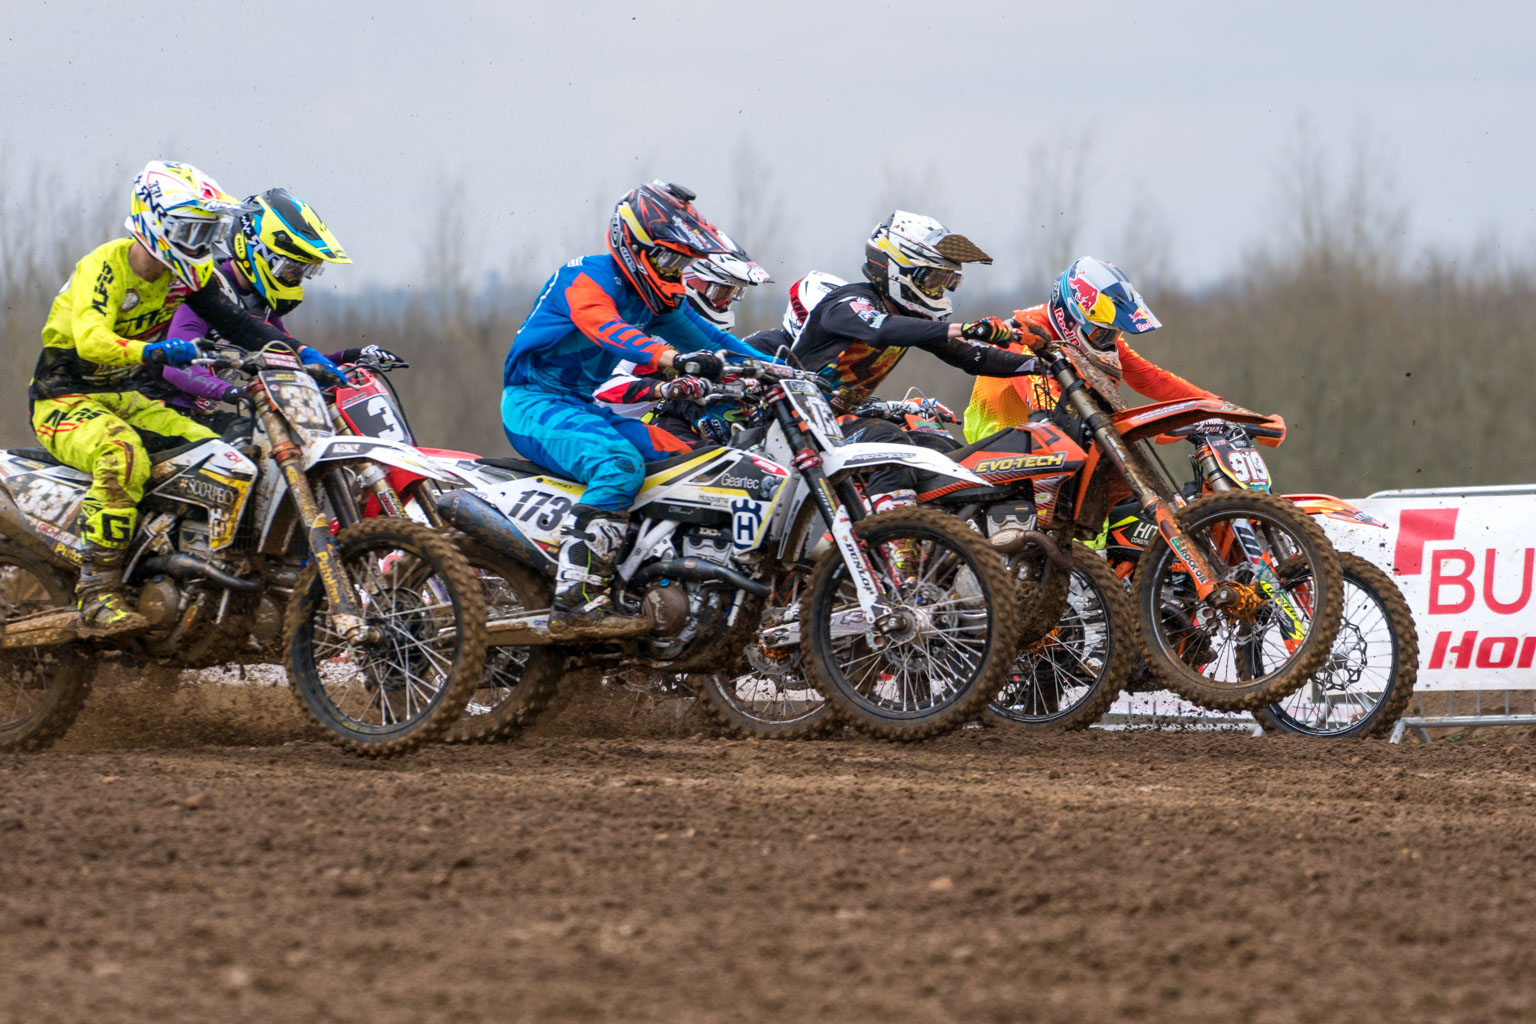 It's blast off for the start of the 2018 Maxxis British championship